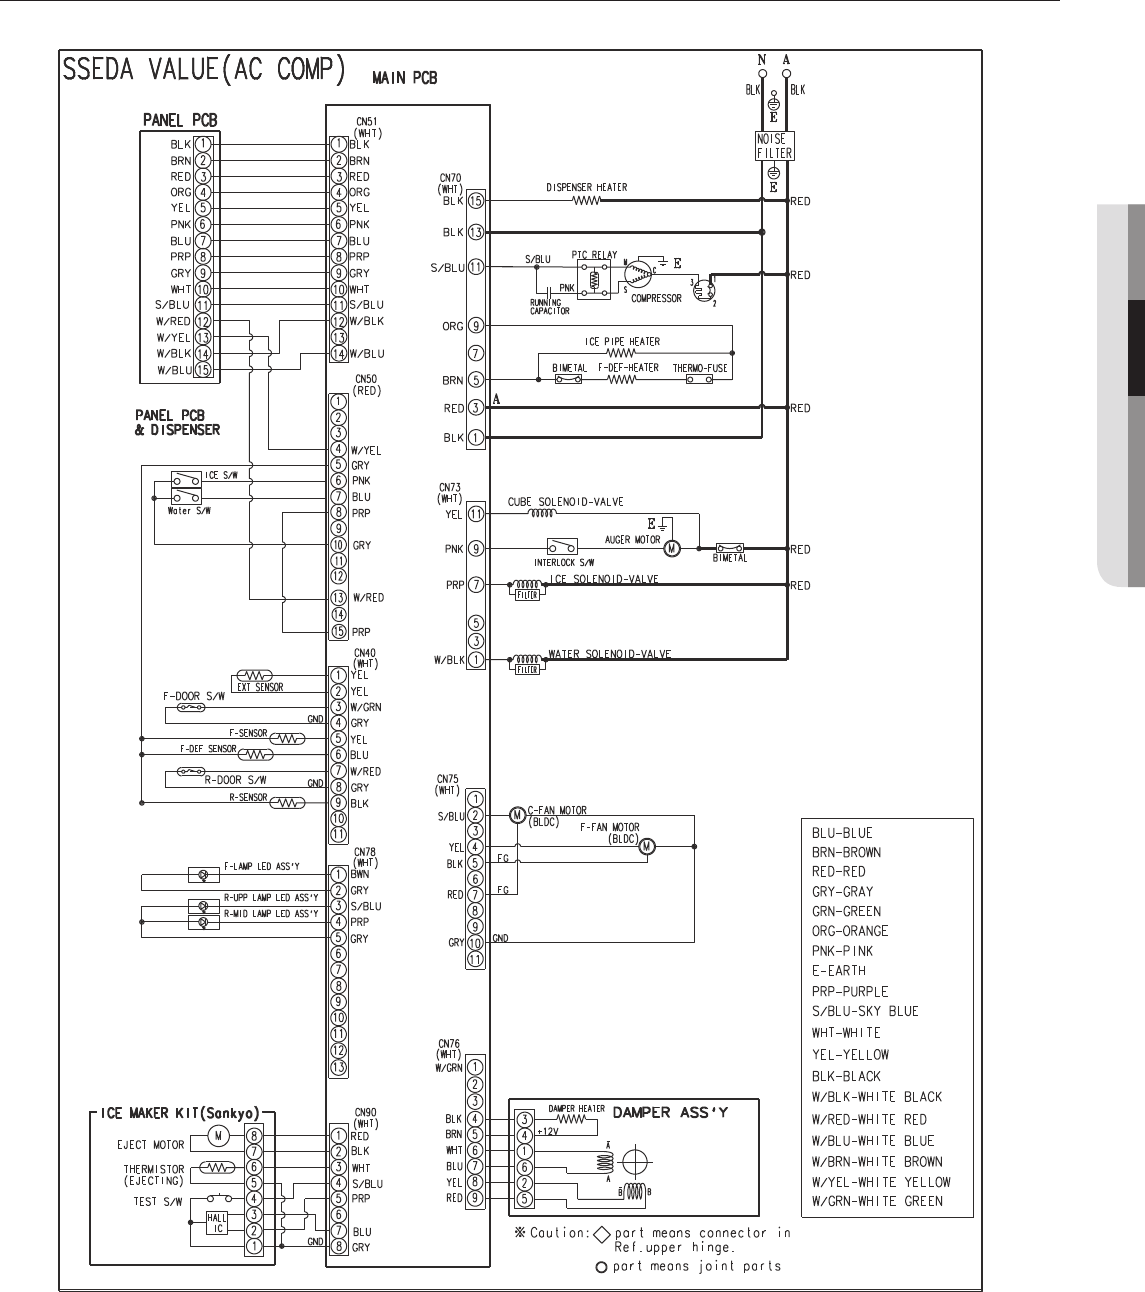 21aa6212 5c03 4539 ac02 99a0885d5c5e bg1f page 31 of samsung refrigerator rs261mdwp user guide wiring diagram for a refrigerator compressor at readyjetset.co